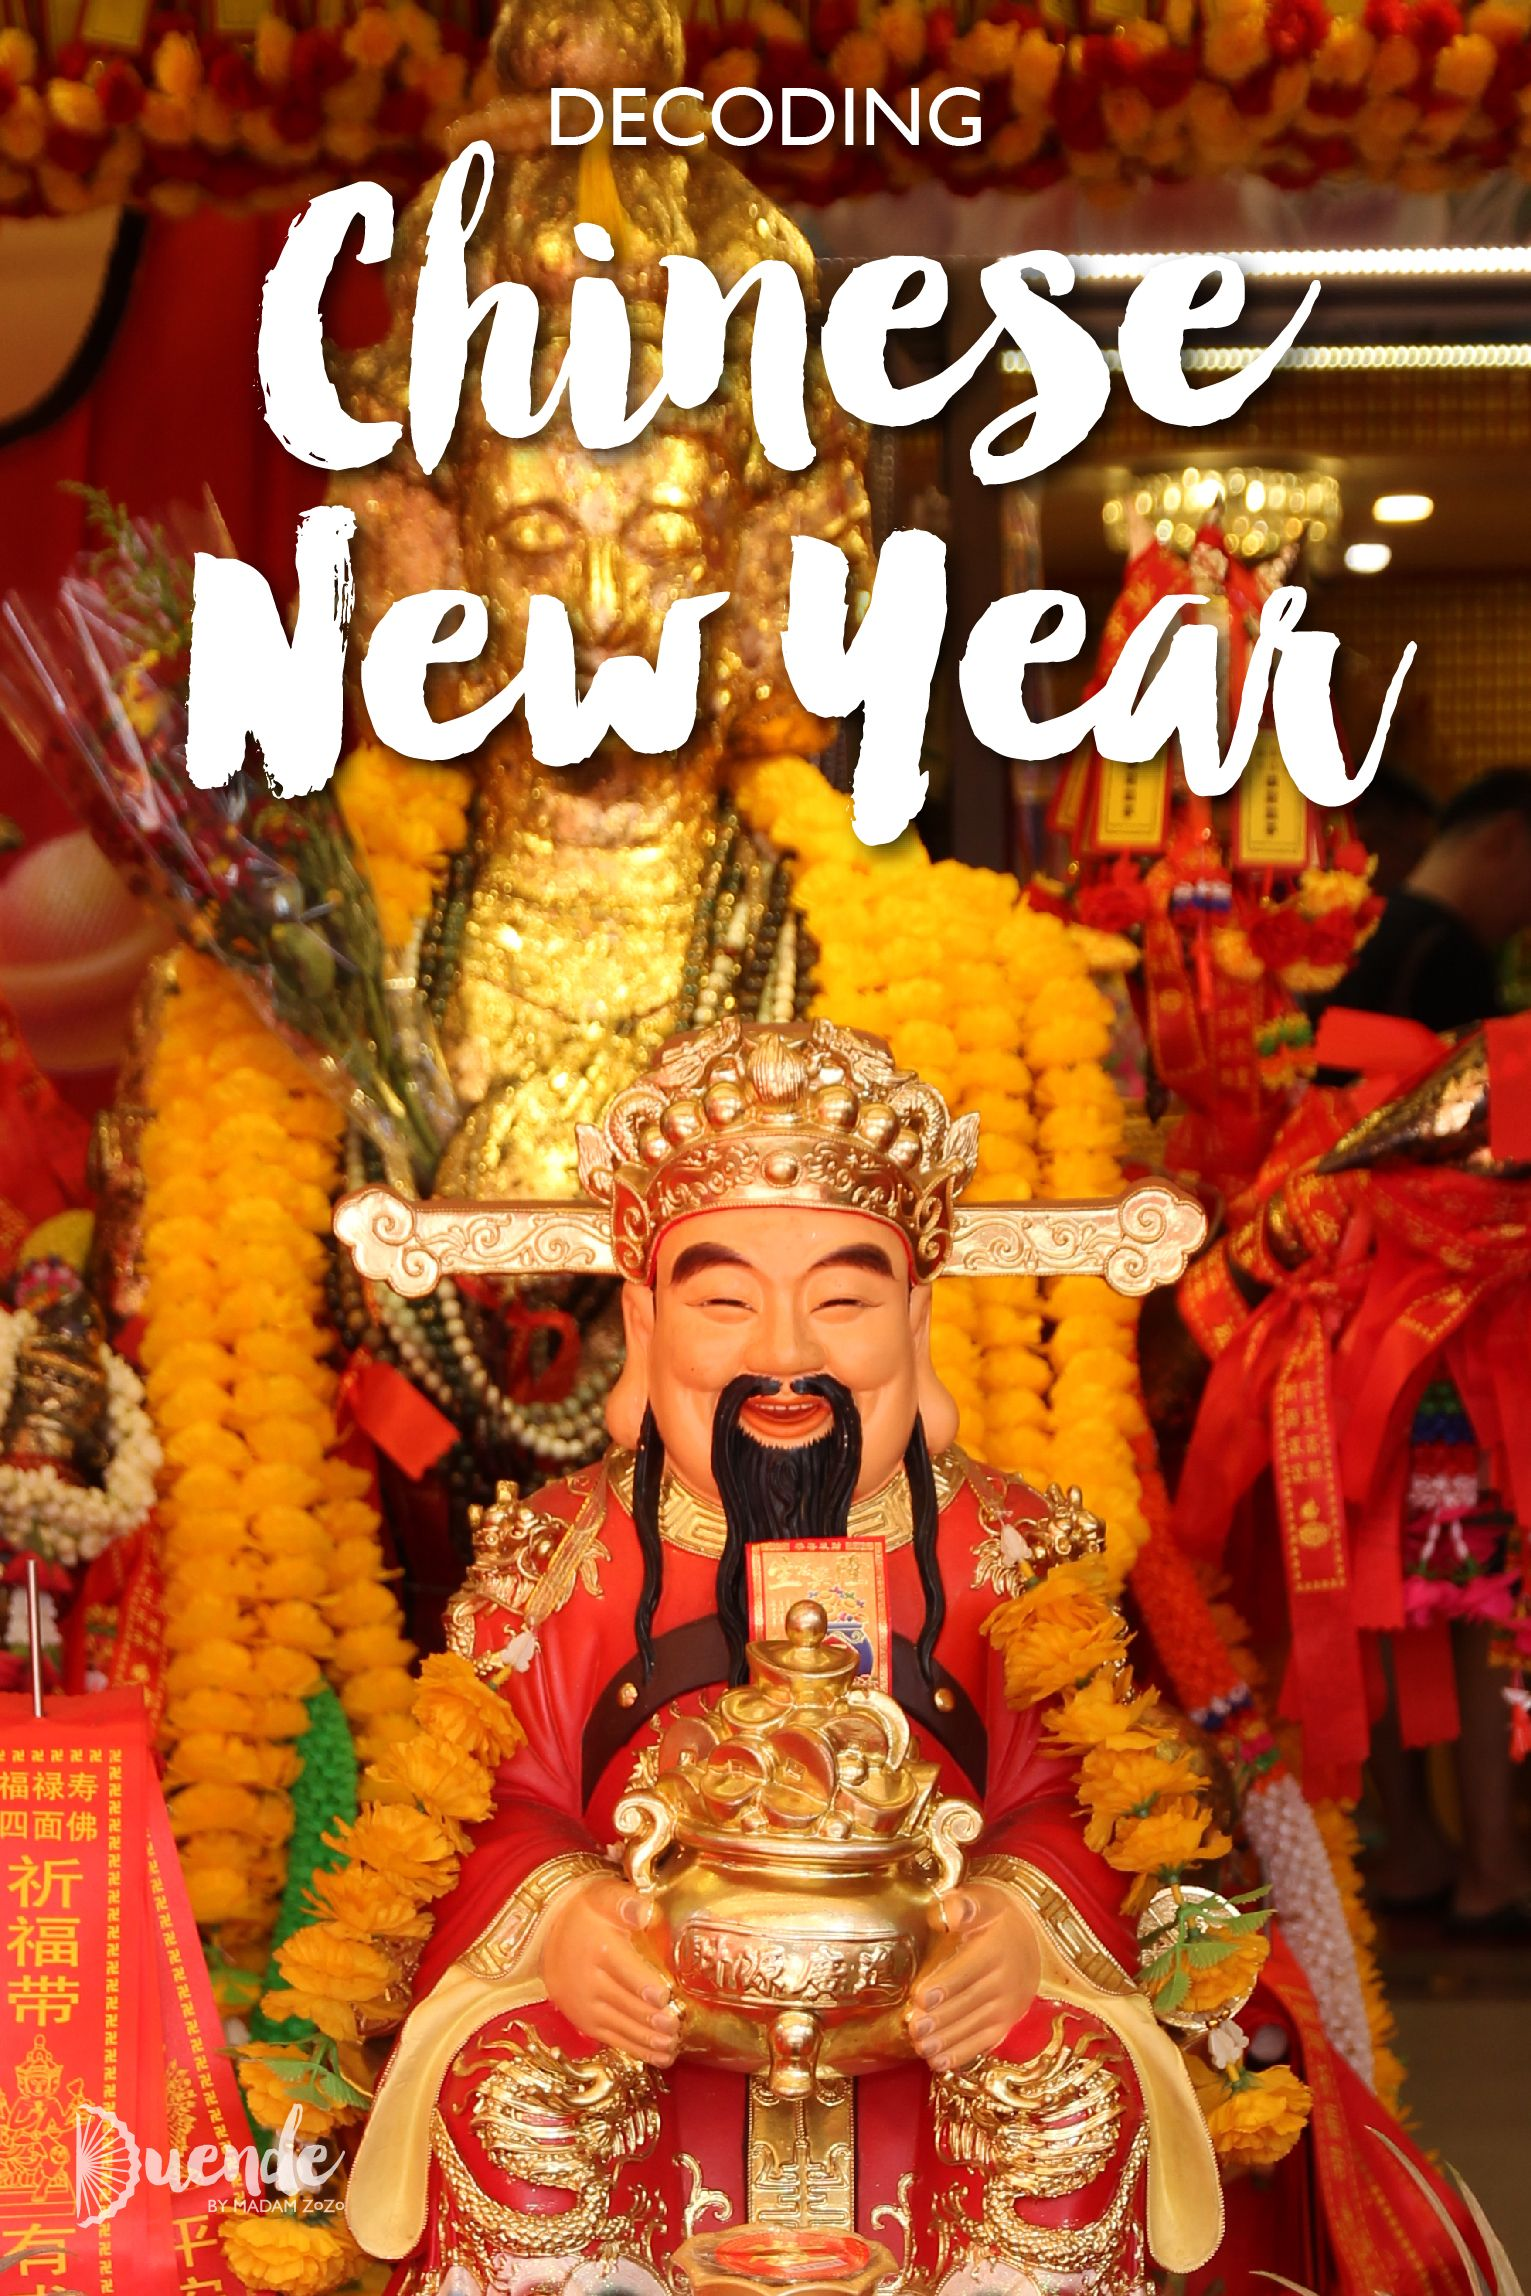 Decoding Chinese New Year Chinese New Year New Years History Traveling By Yourself